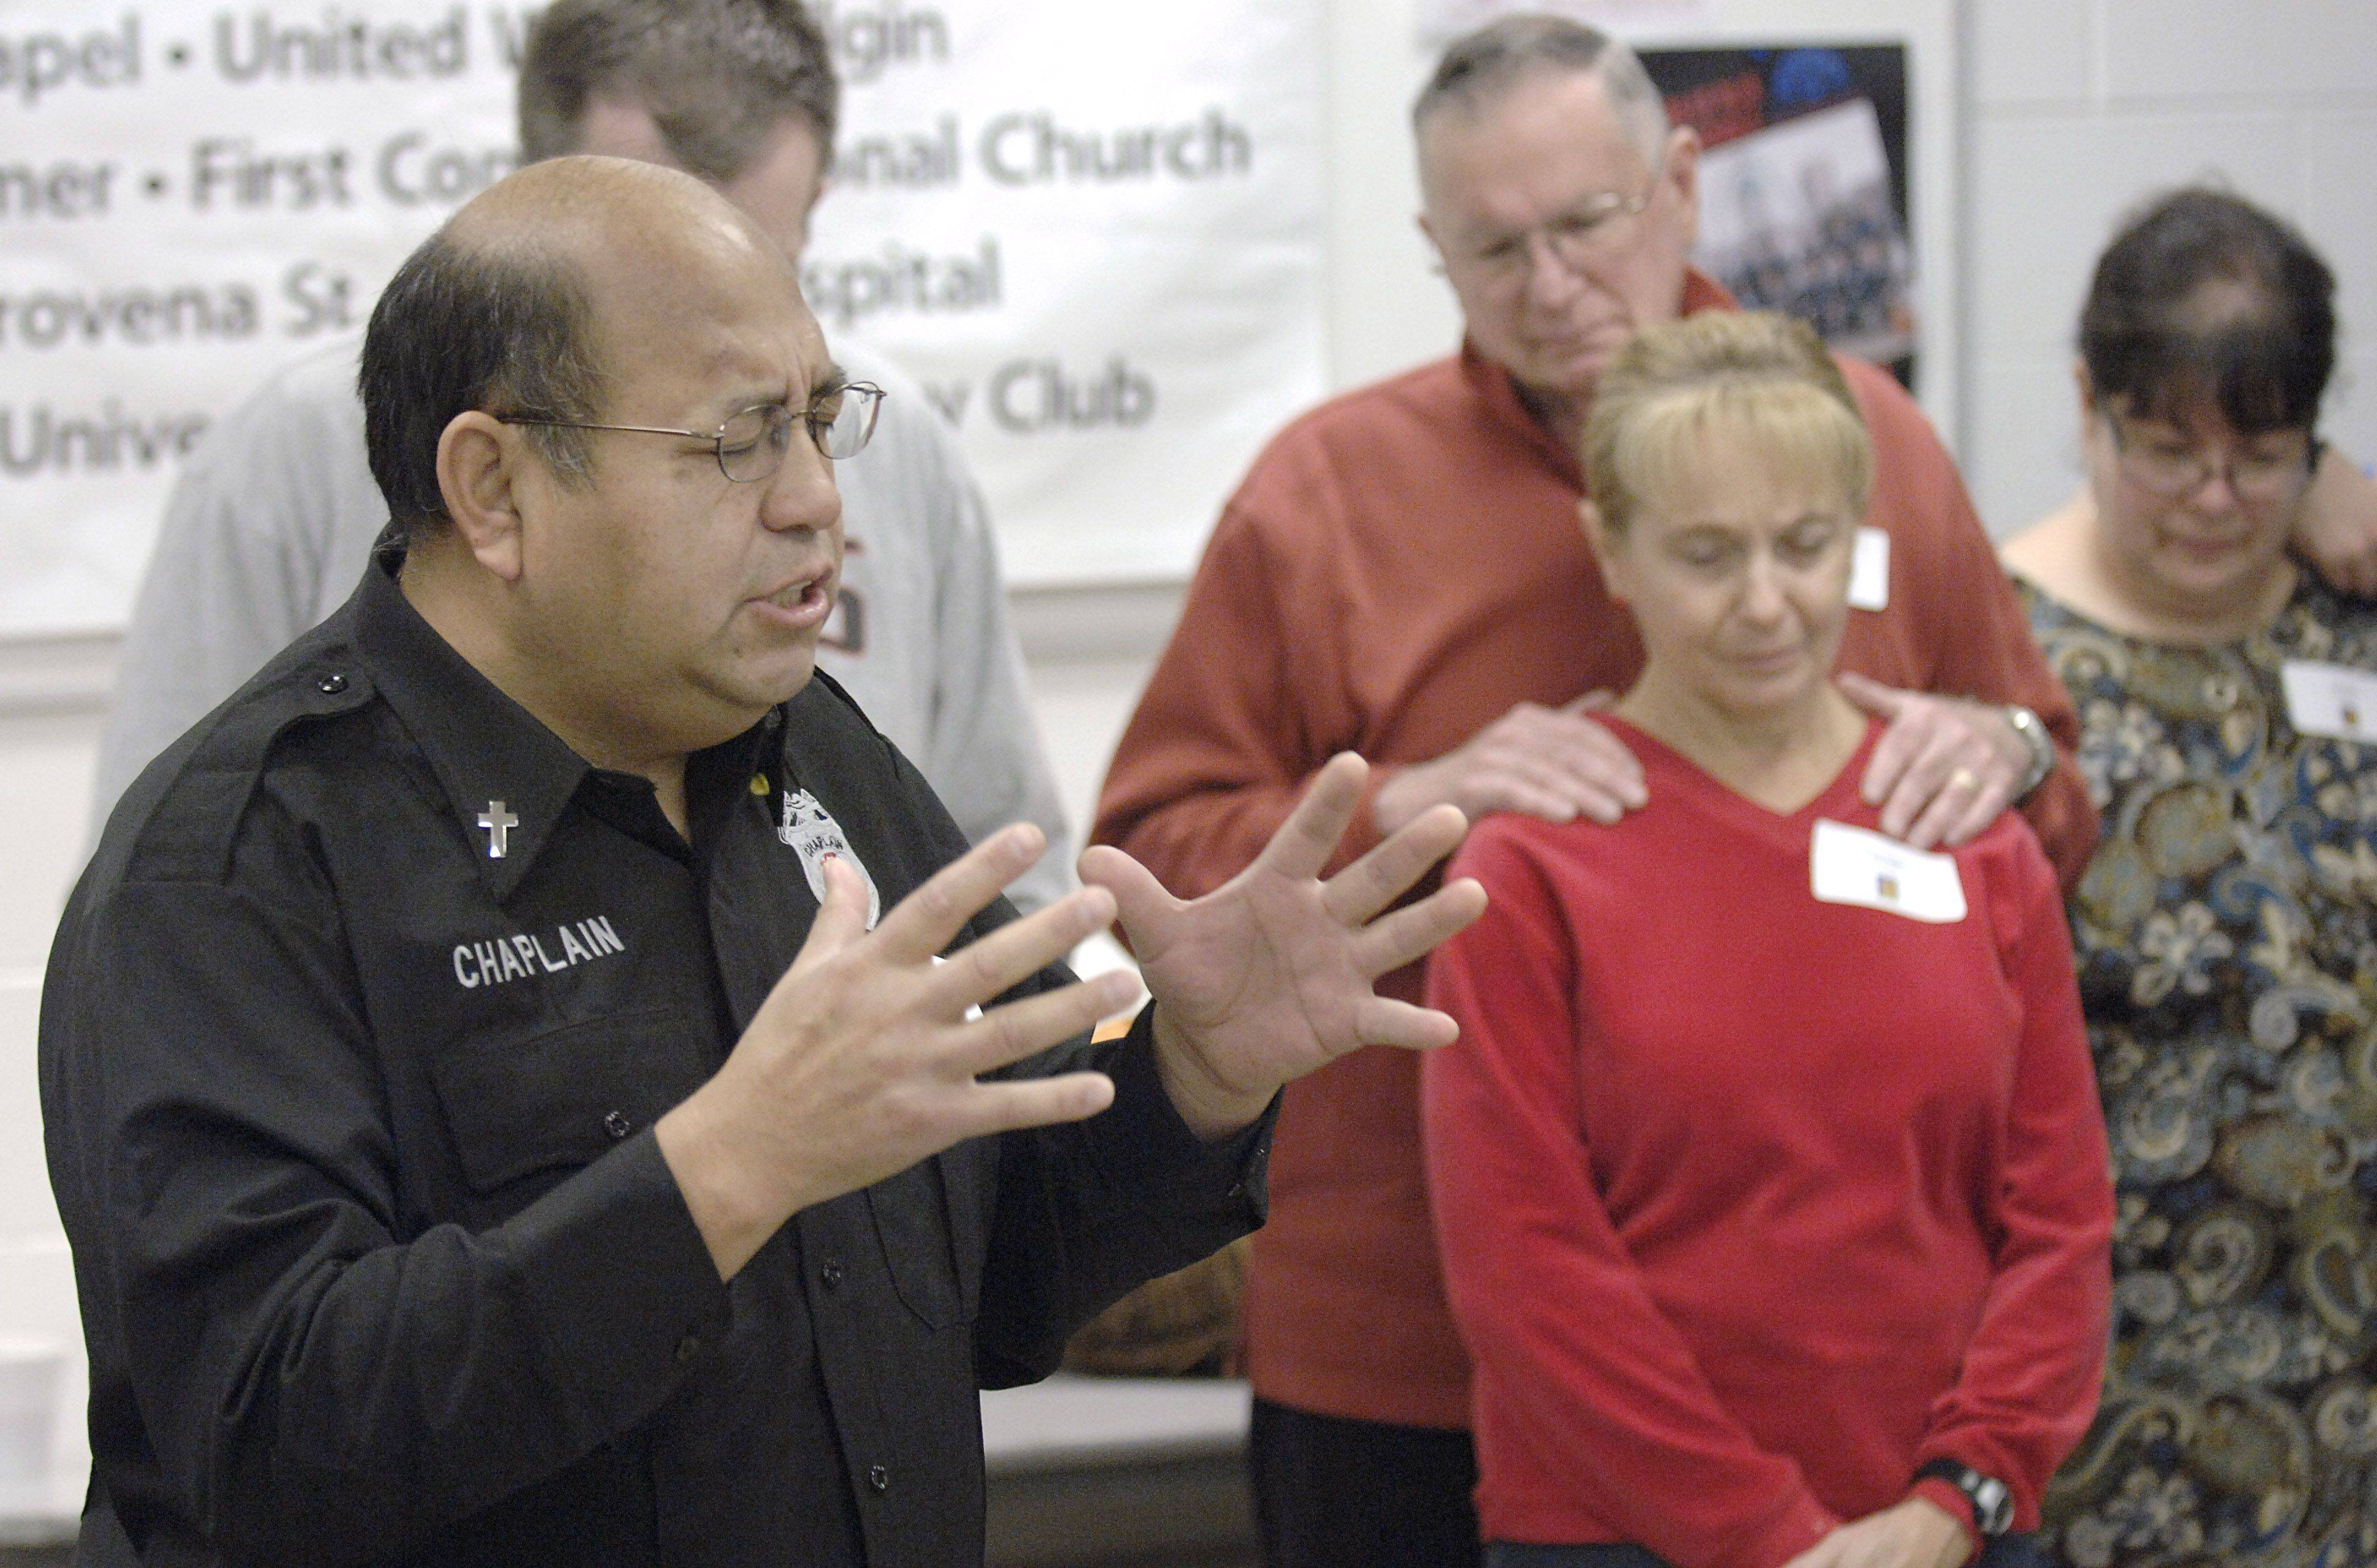 Elgin Police Community Chaplain Henoch Fuentes of Elgin leads volunteers in prayer before the start of the community Thanksgiving dinner at the Hemmens Cultural Center in Elgin on Thanksgiving Day. Fuentes is also a Salvation Army pastor in Elgin.